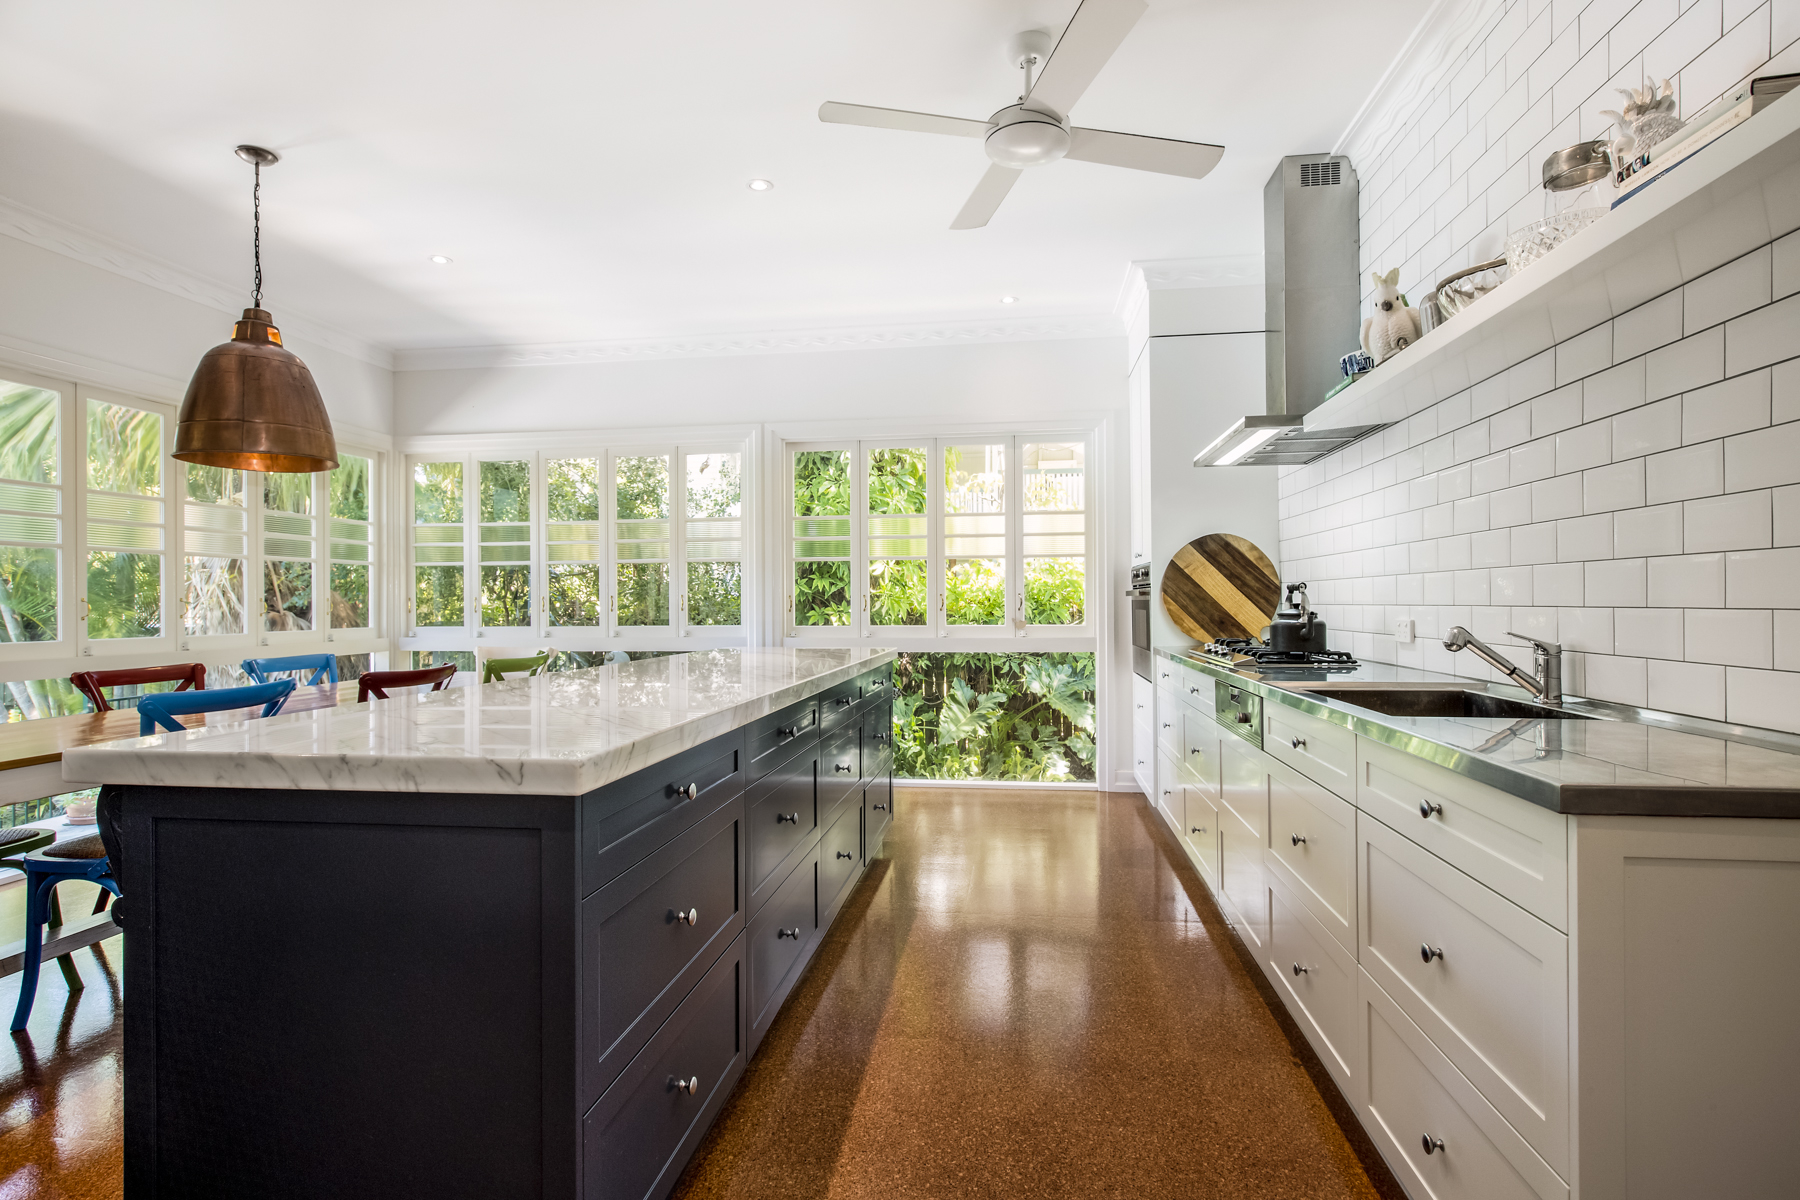 Traditional Country Kitchen Design Brisbane With Natural